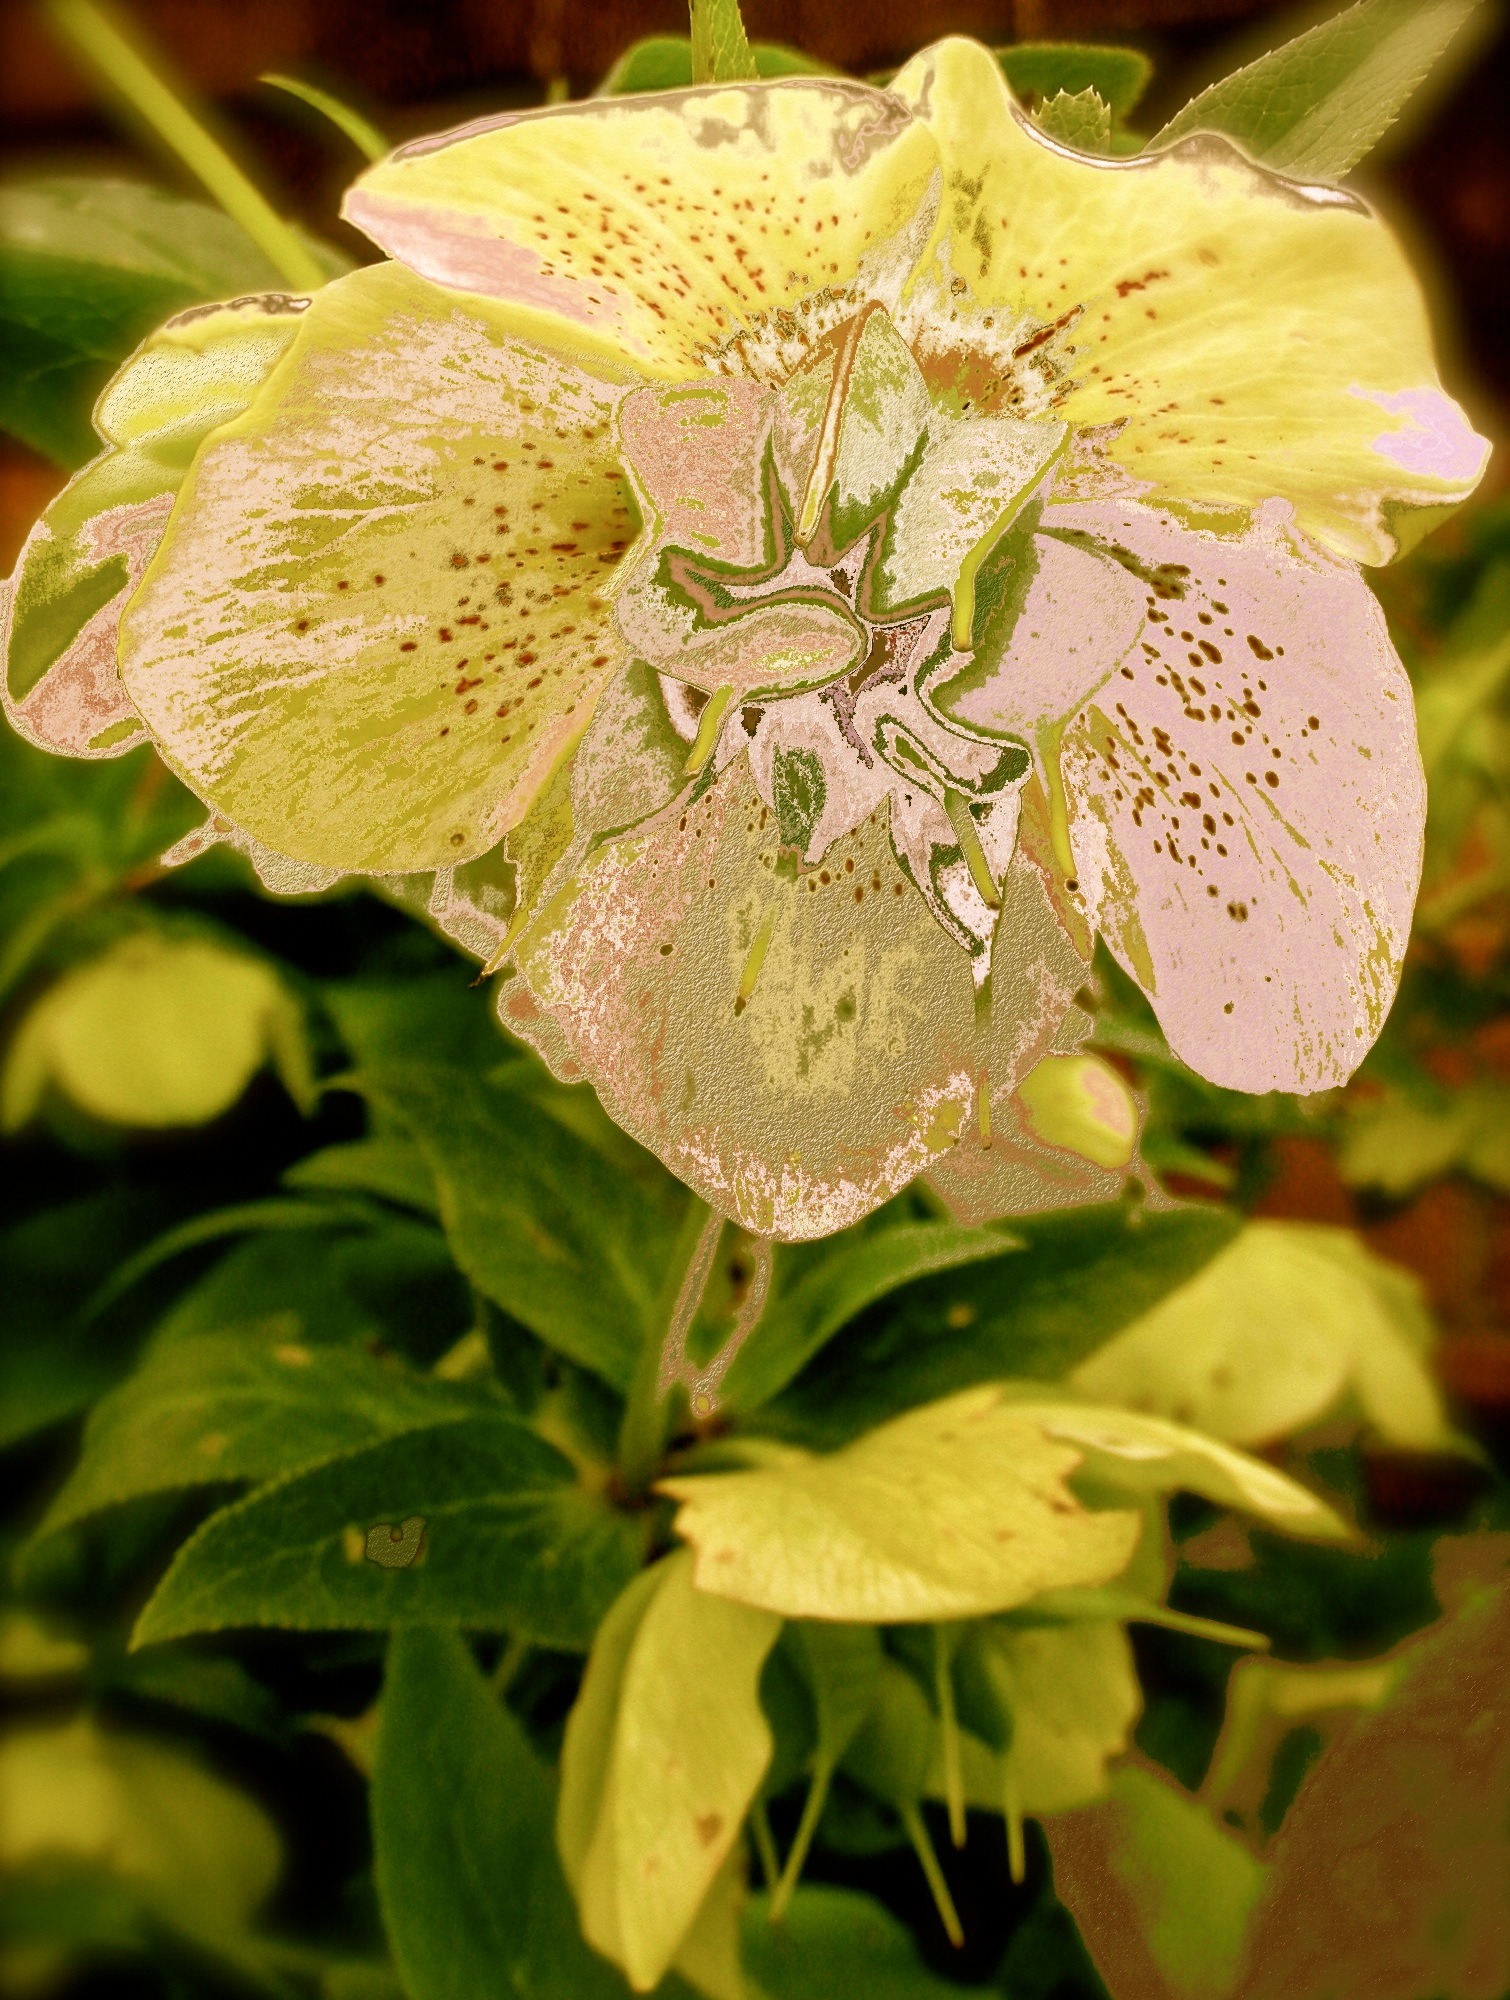 Hellebore3 by KateHodges